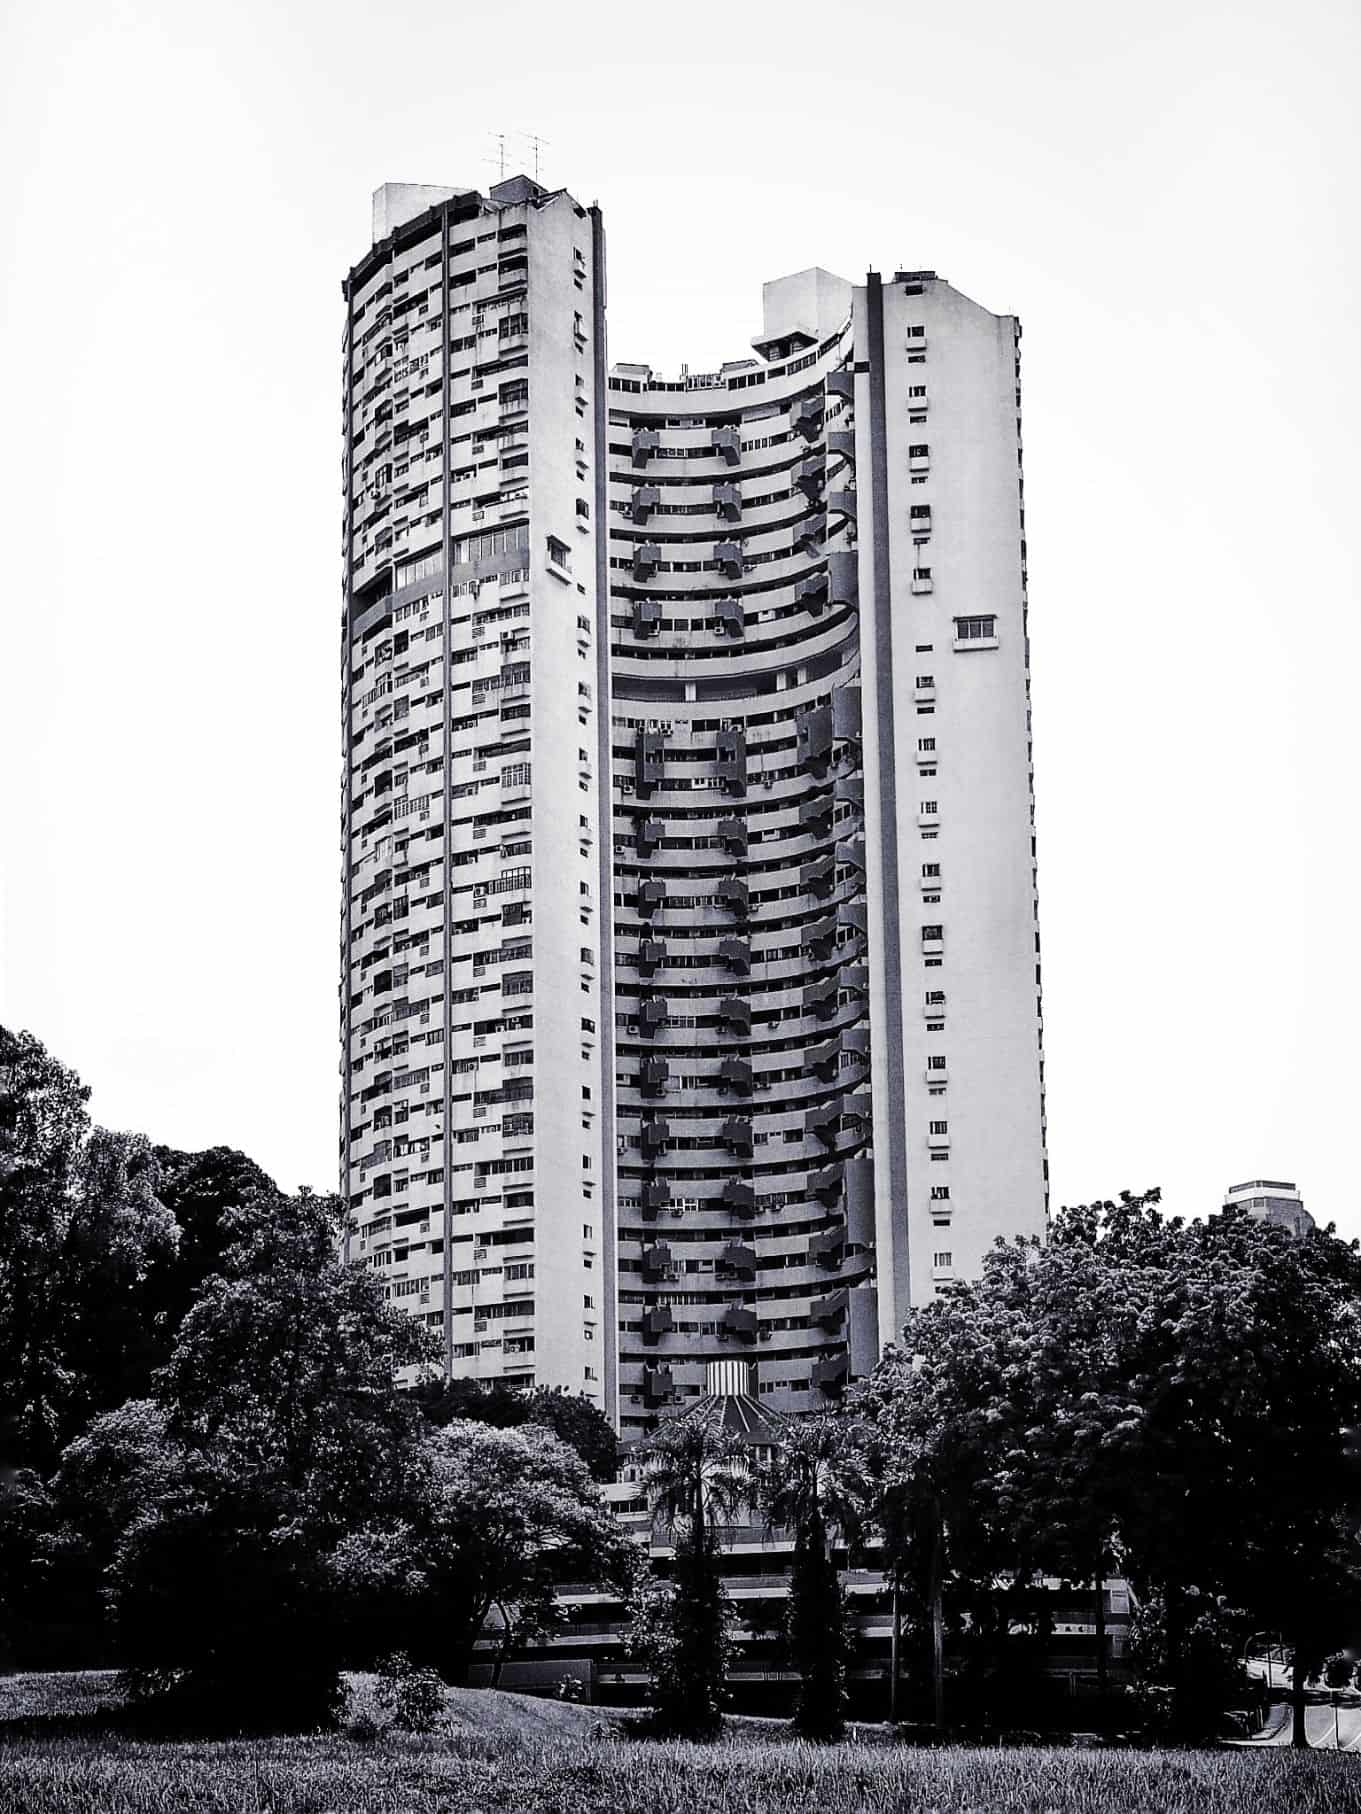 The Other Owners Agreed To An En-bloc Right After I Moved In: Now What?